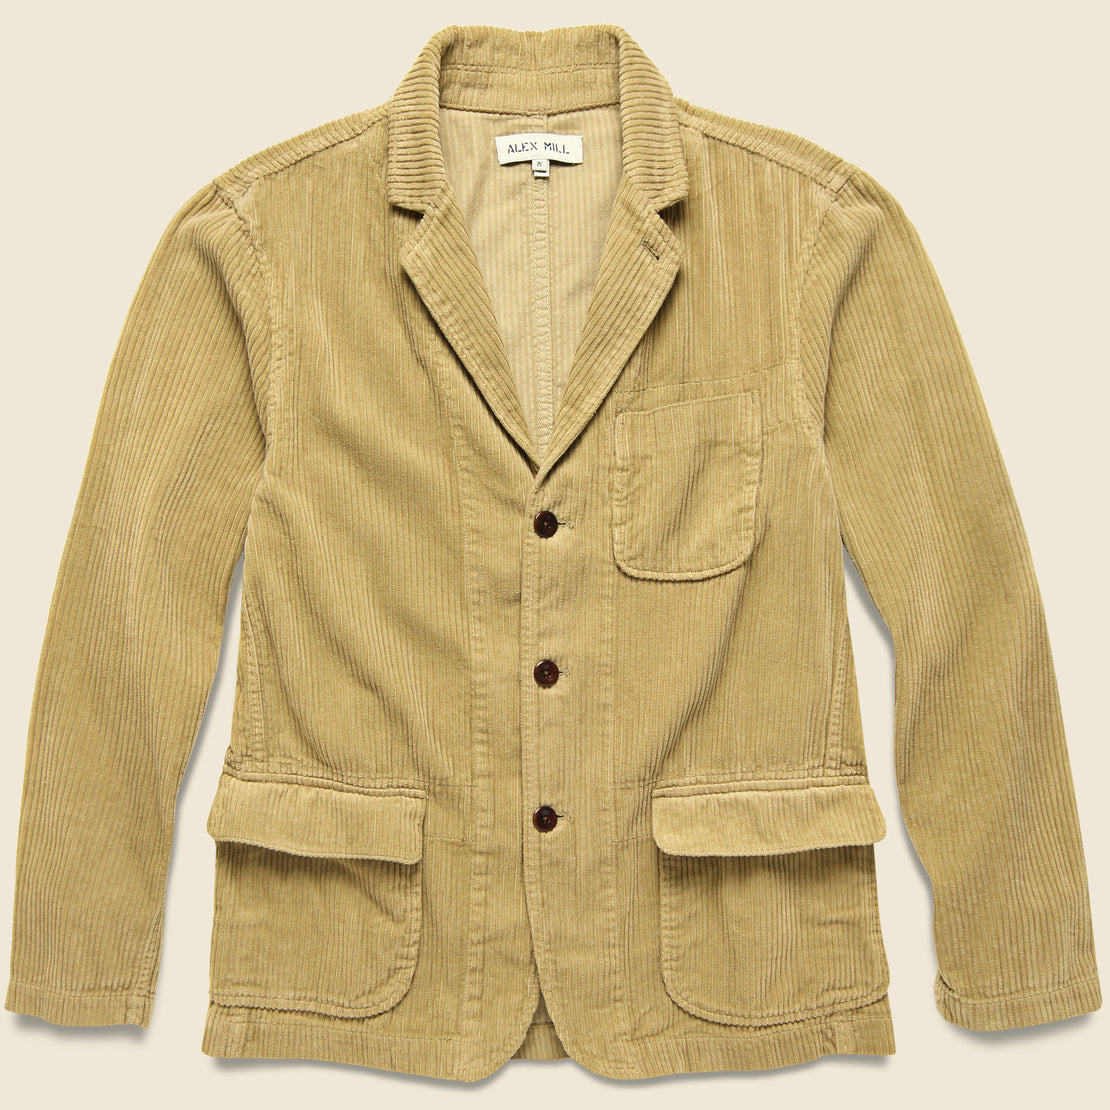 Alex Mill Rugged Cord Sack Jacket - Khaki